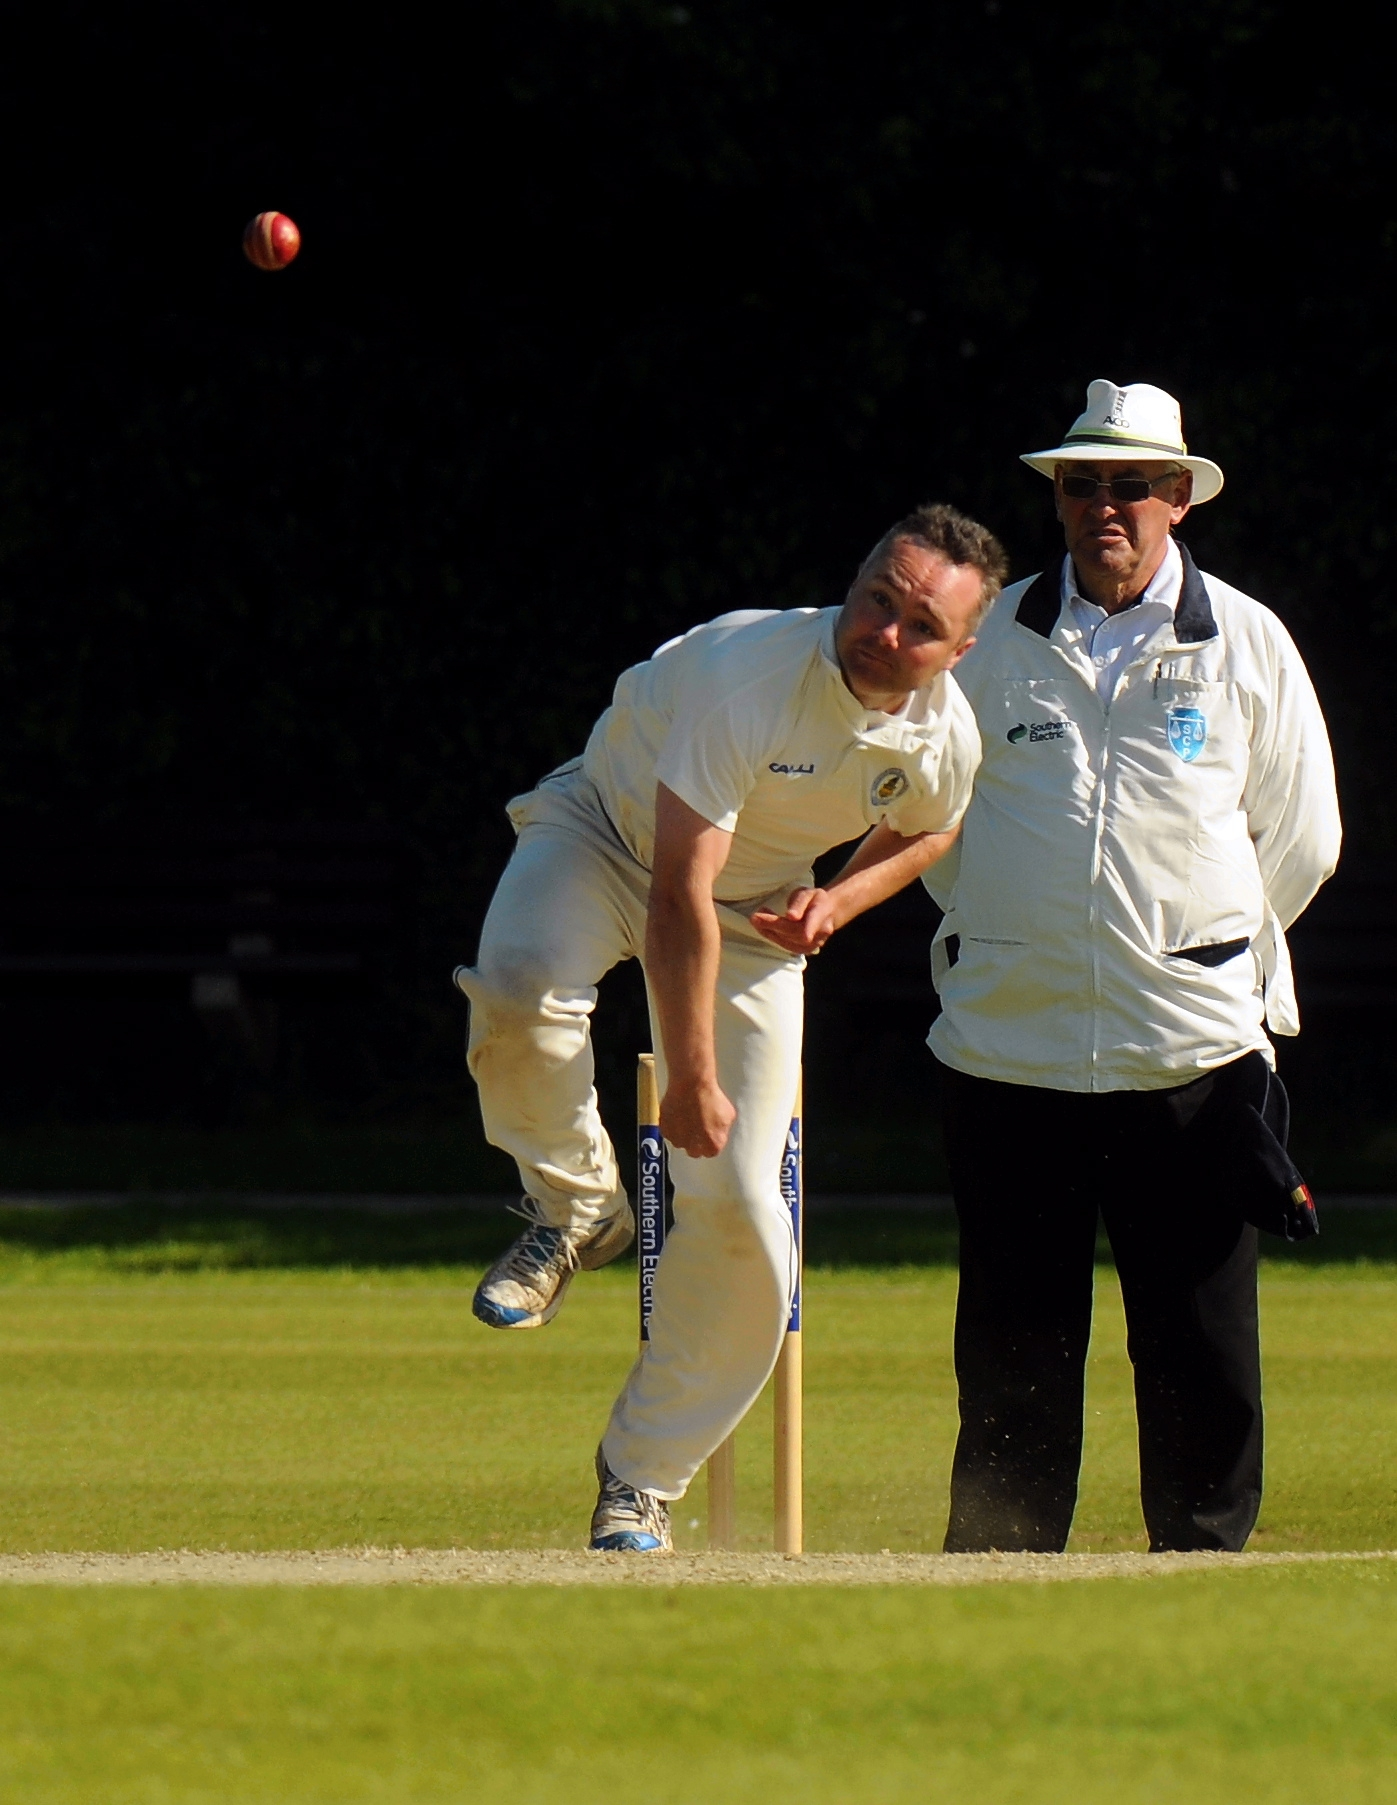 In addition to being a decent bowler, Ryan Connor is Basingstoke and North Hants' main sledging th